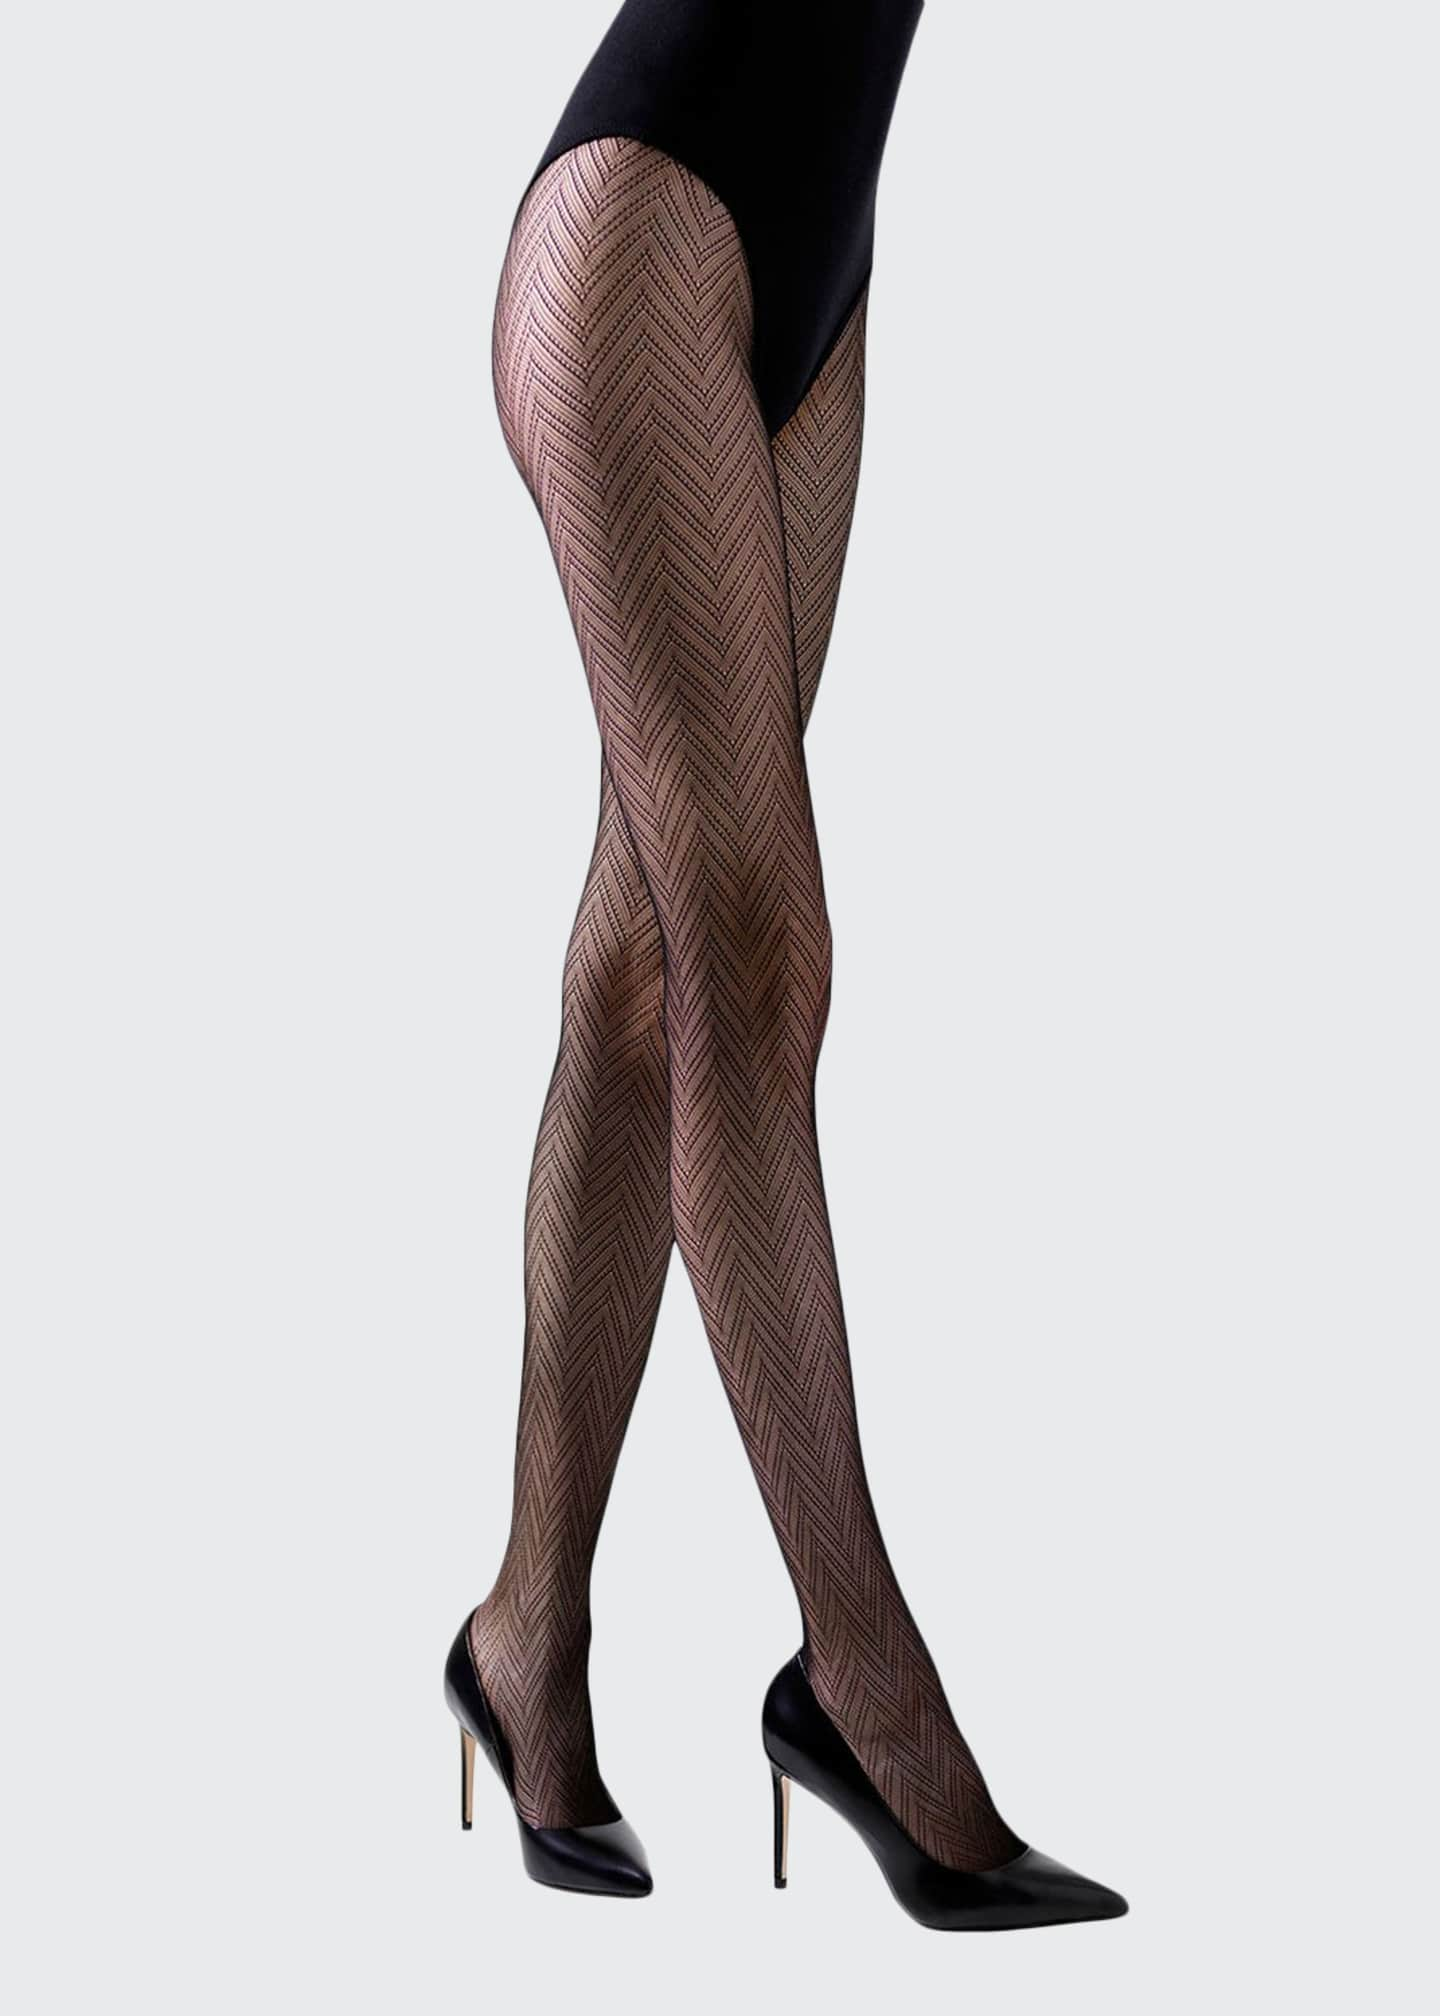 Natori 2-Pack Herringbone Net & Shimmer Sheer Tights